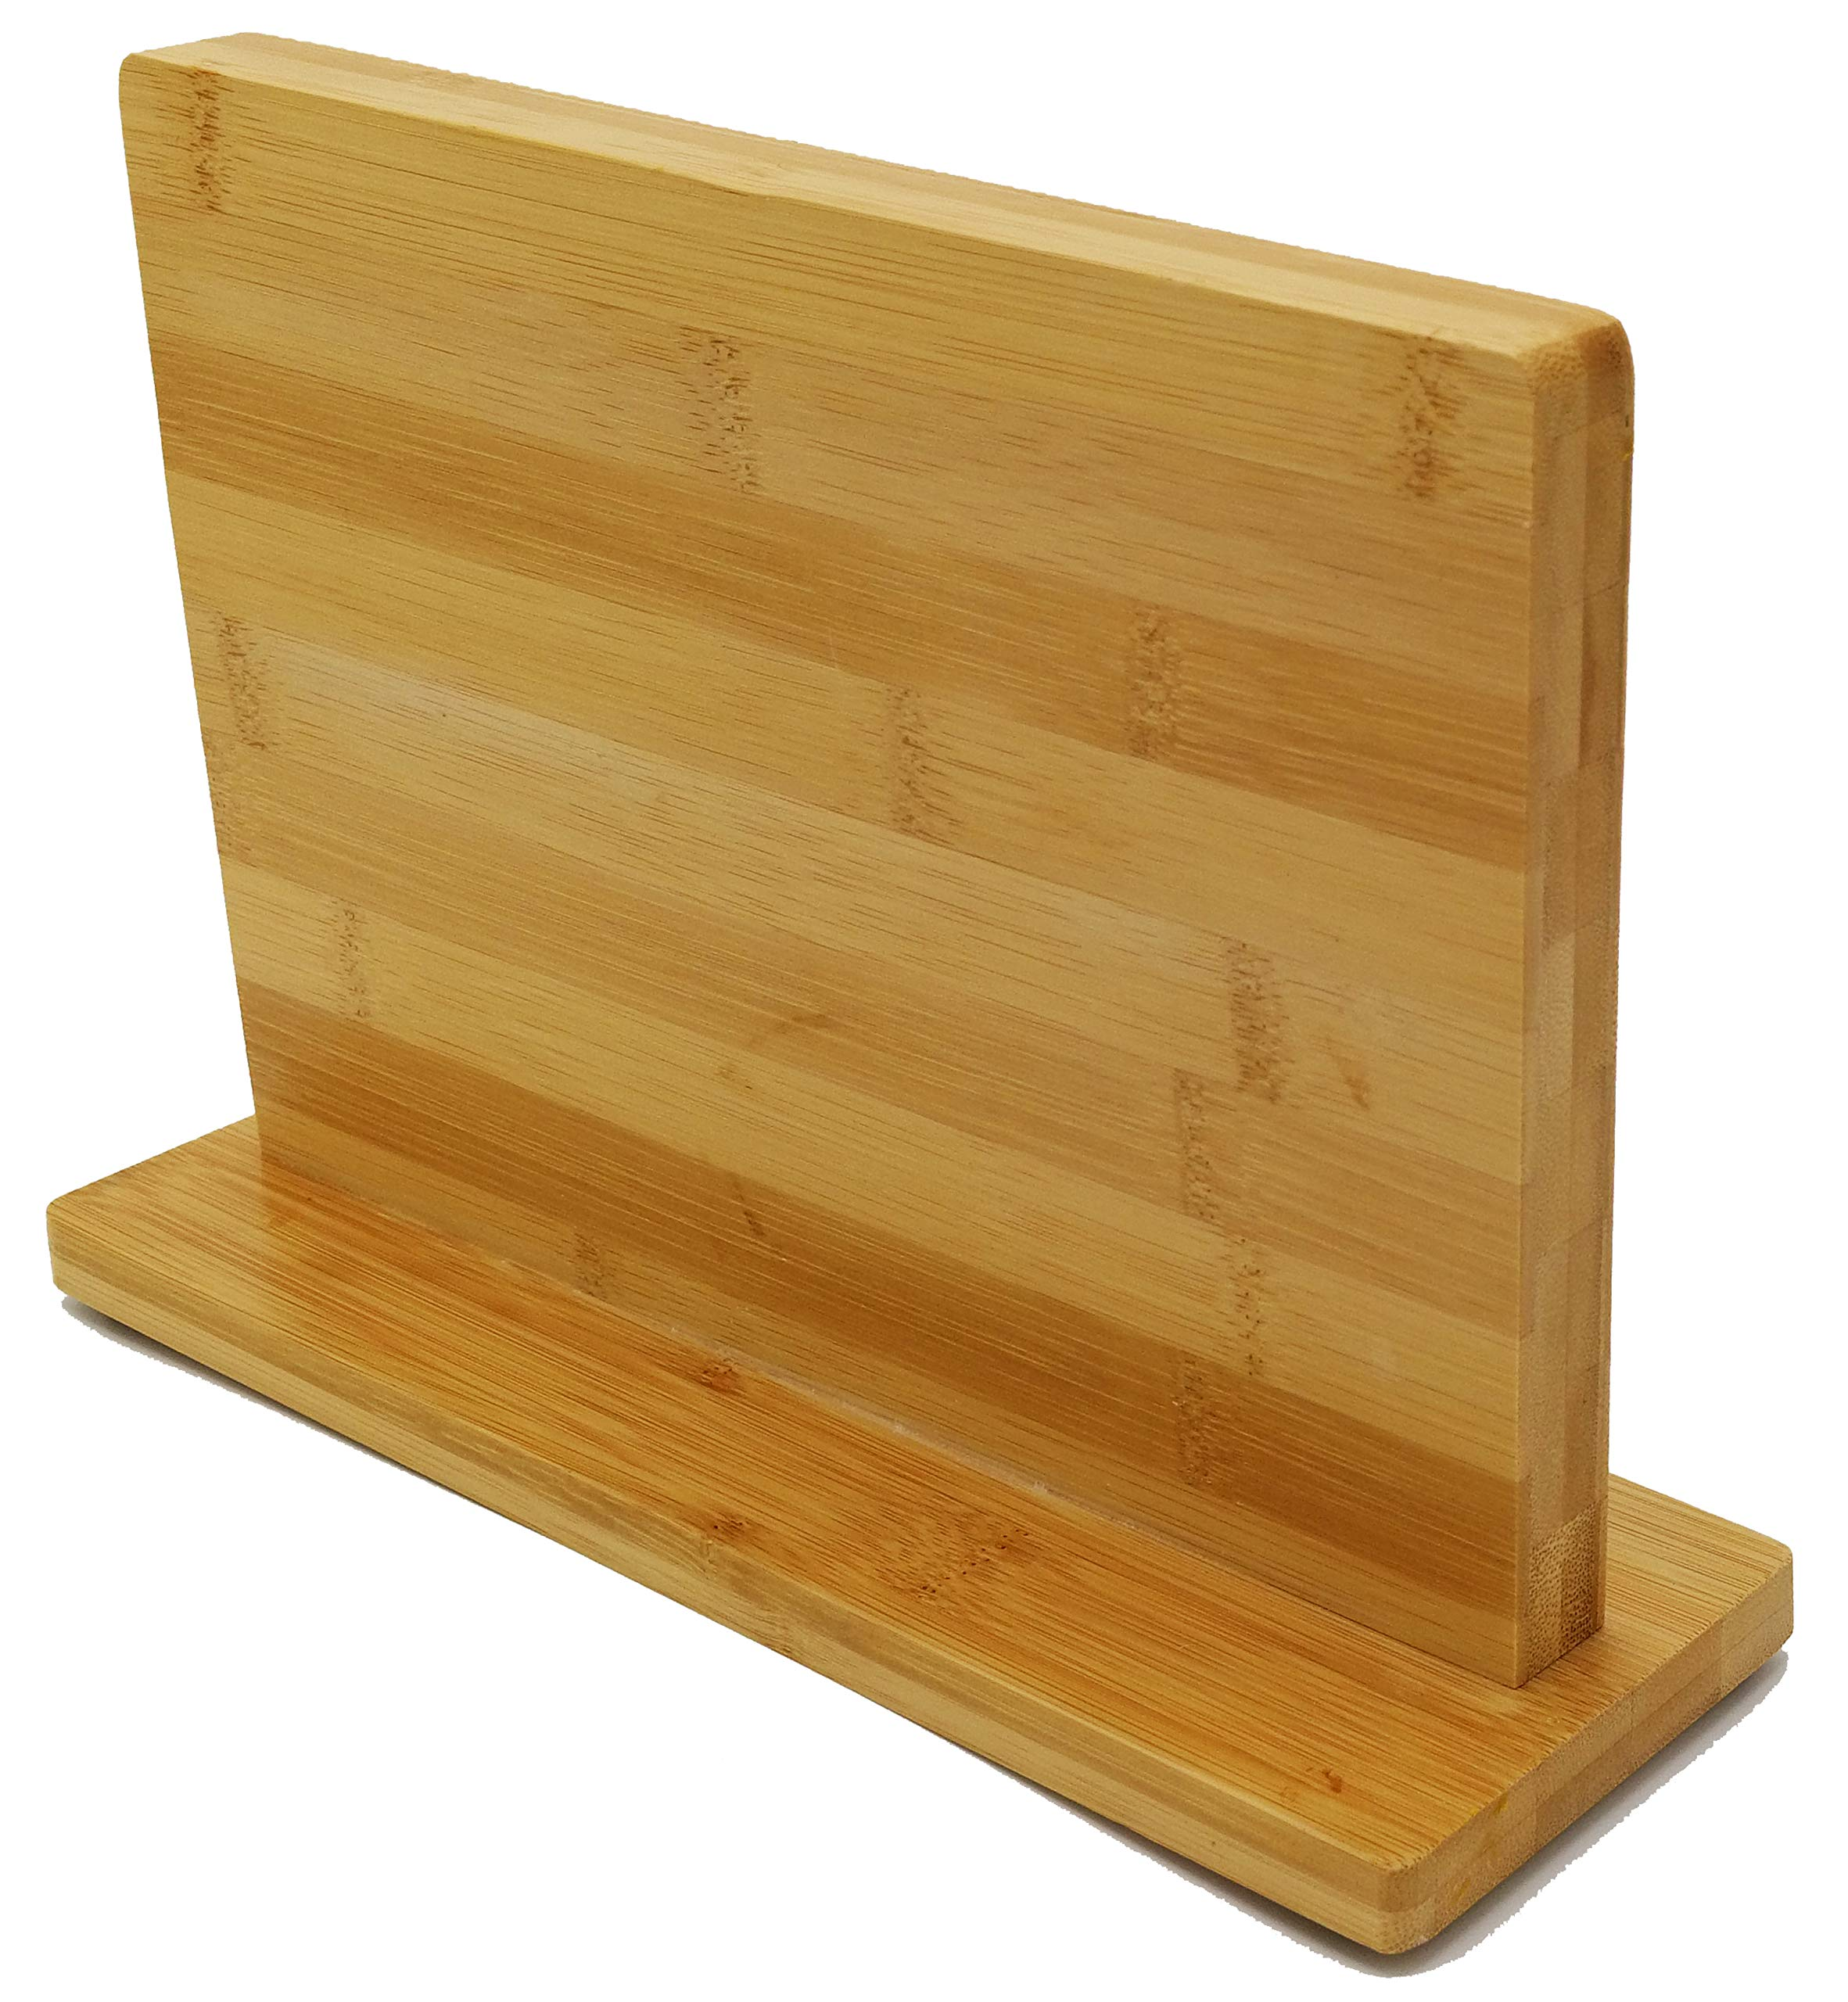 ETTU Kitchen Double-Sided Bamboo Magnetic Knife Block-Fits All Knives and Other Utensils Up to 8''-Saves Space, Displays Knives, Keeps Knives Sharp and Clean, Easy Access to Knives while Cooking by ETTU Kitchen